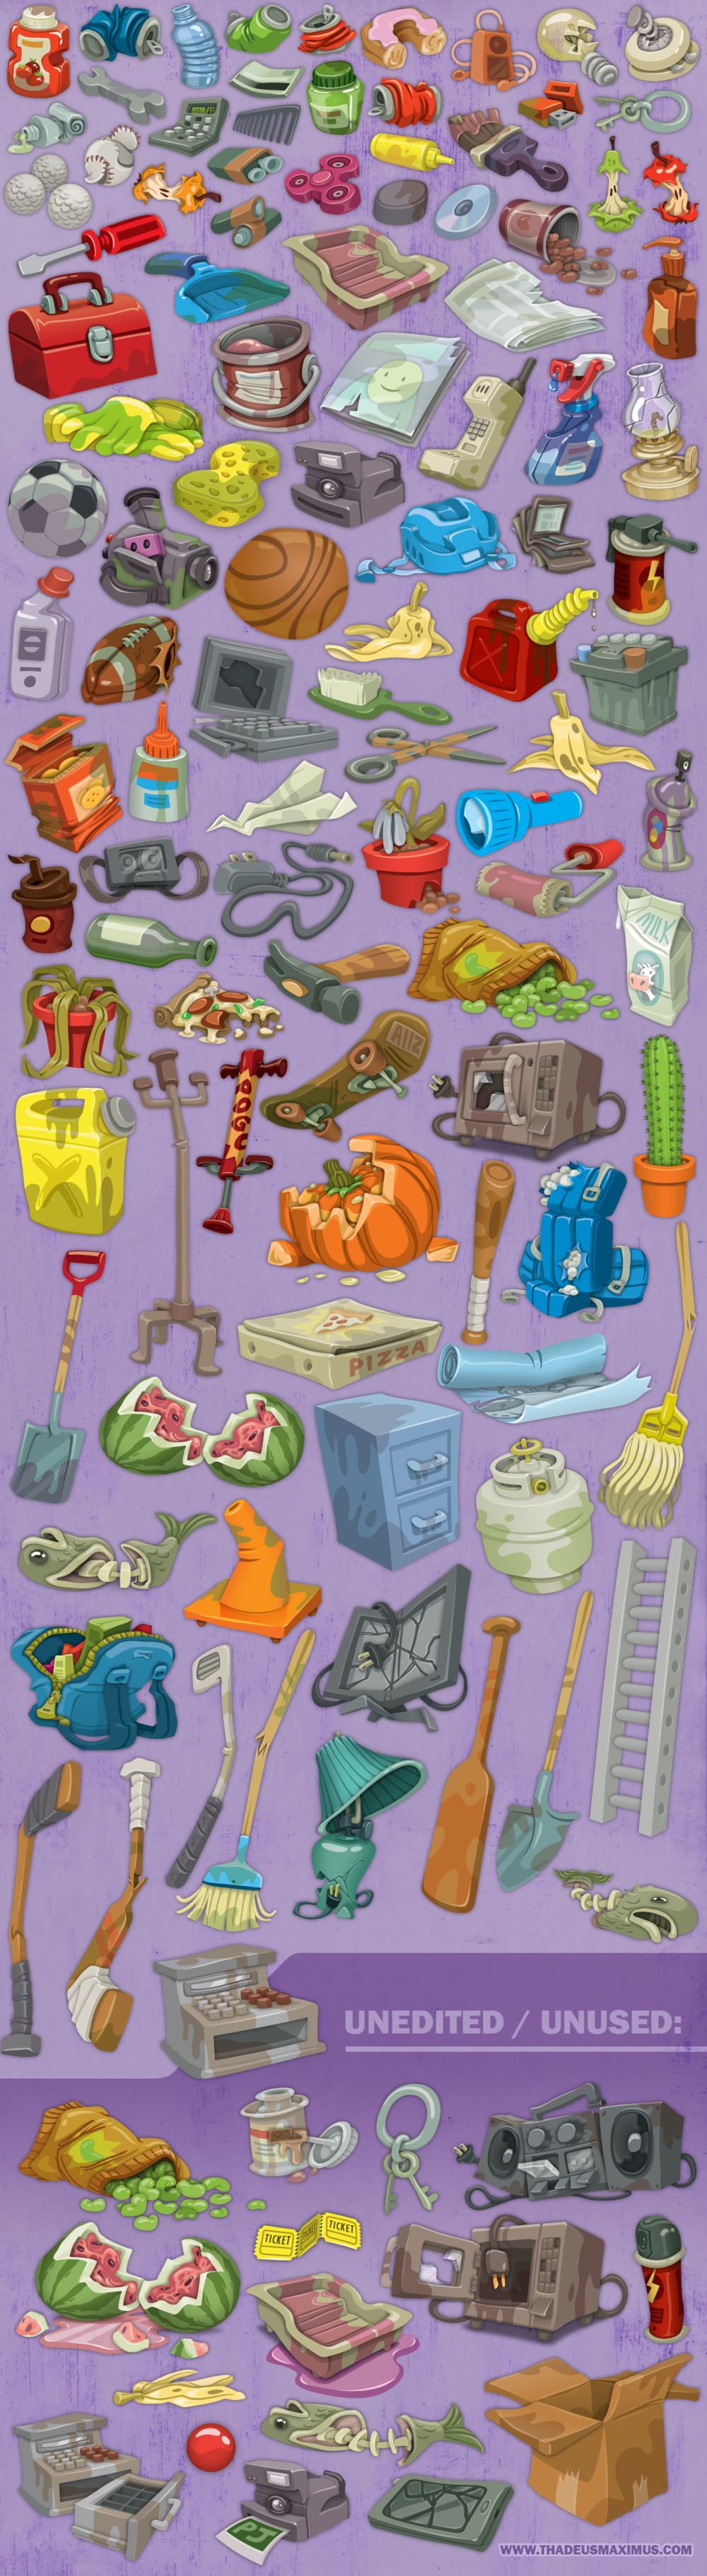 Zoo Clean Up: Searchable Objects